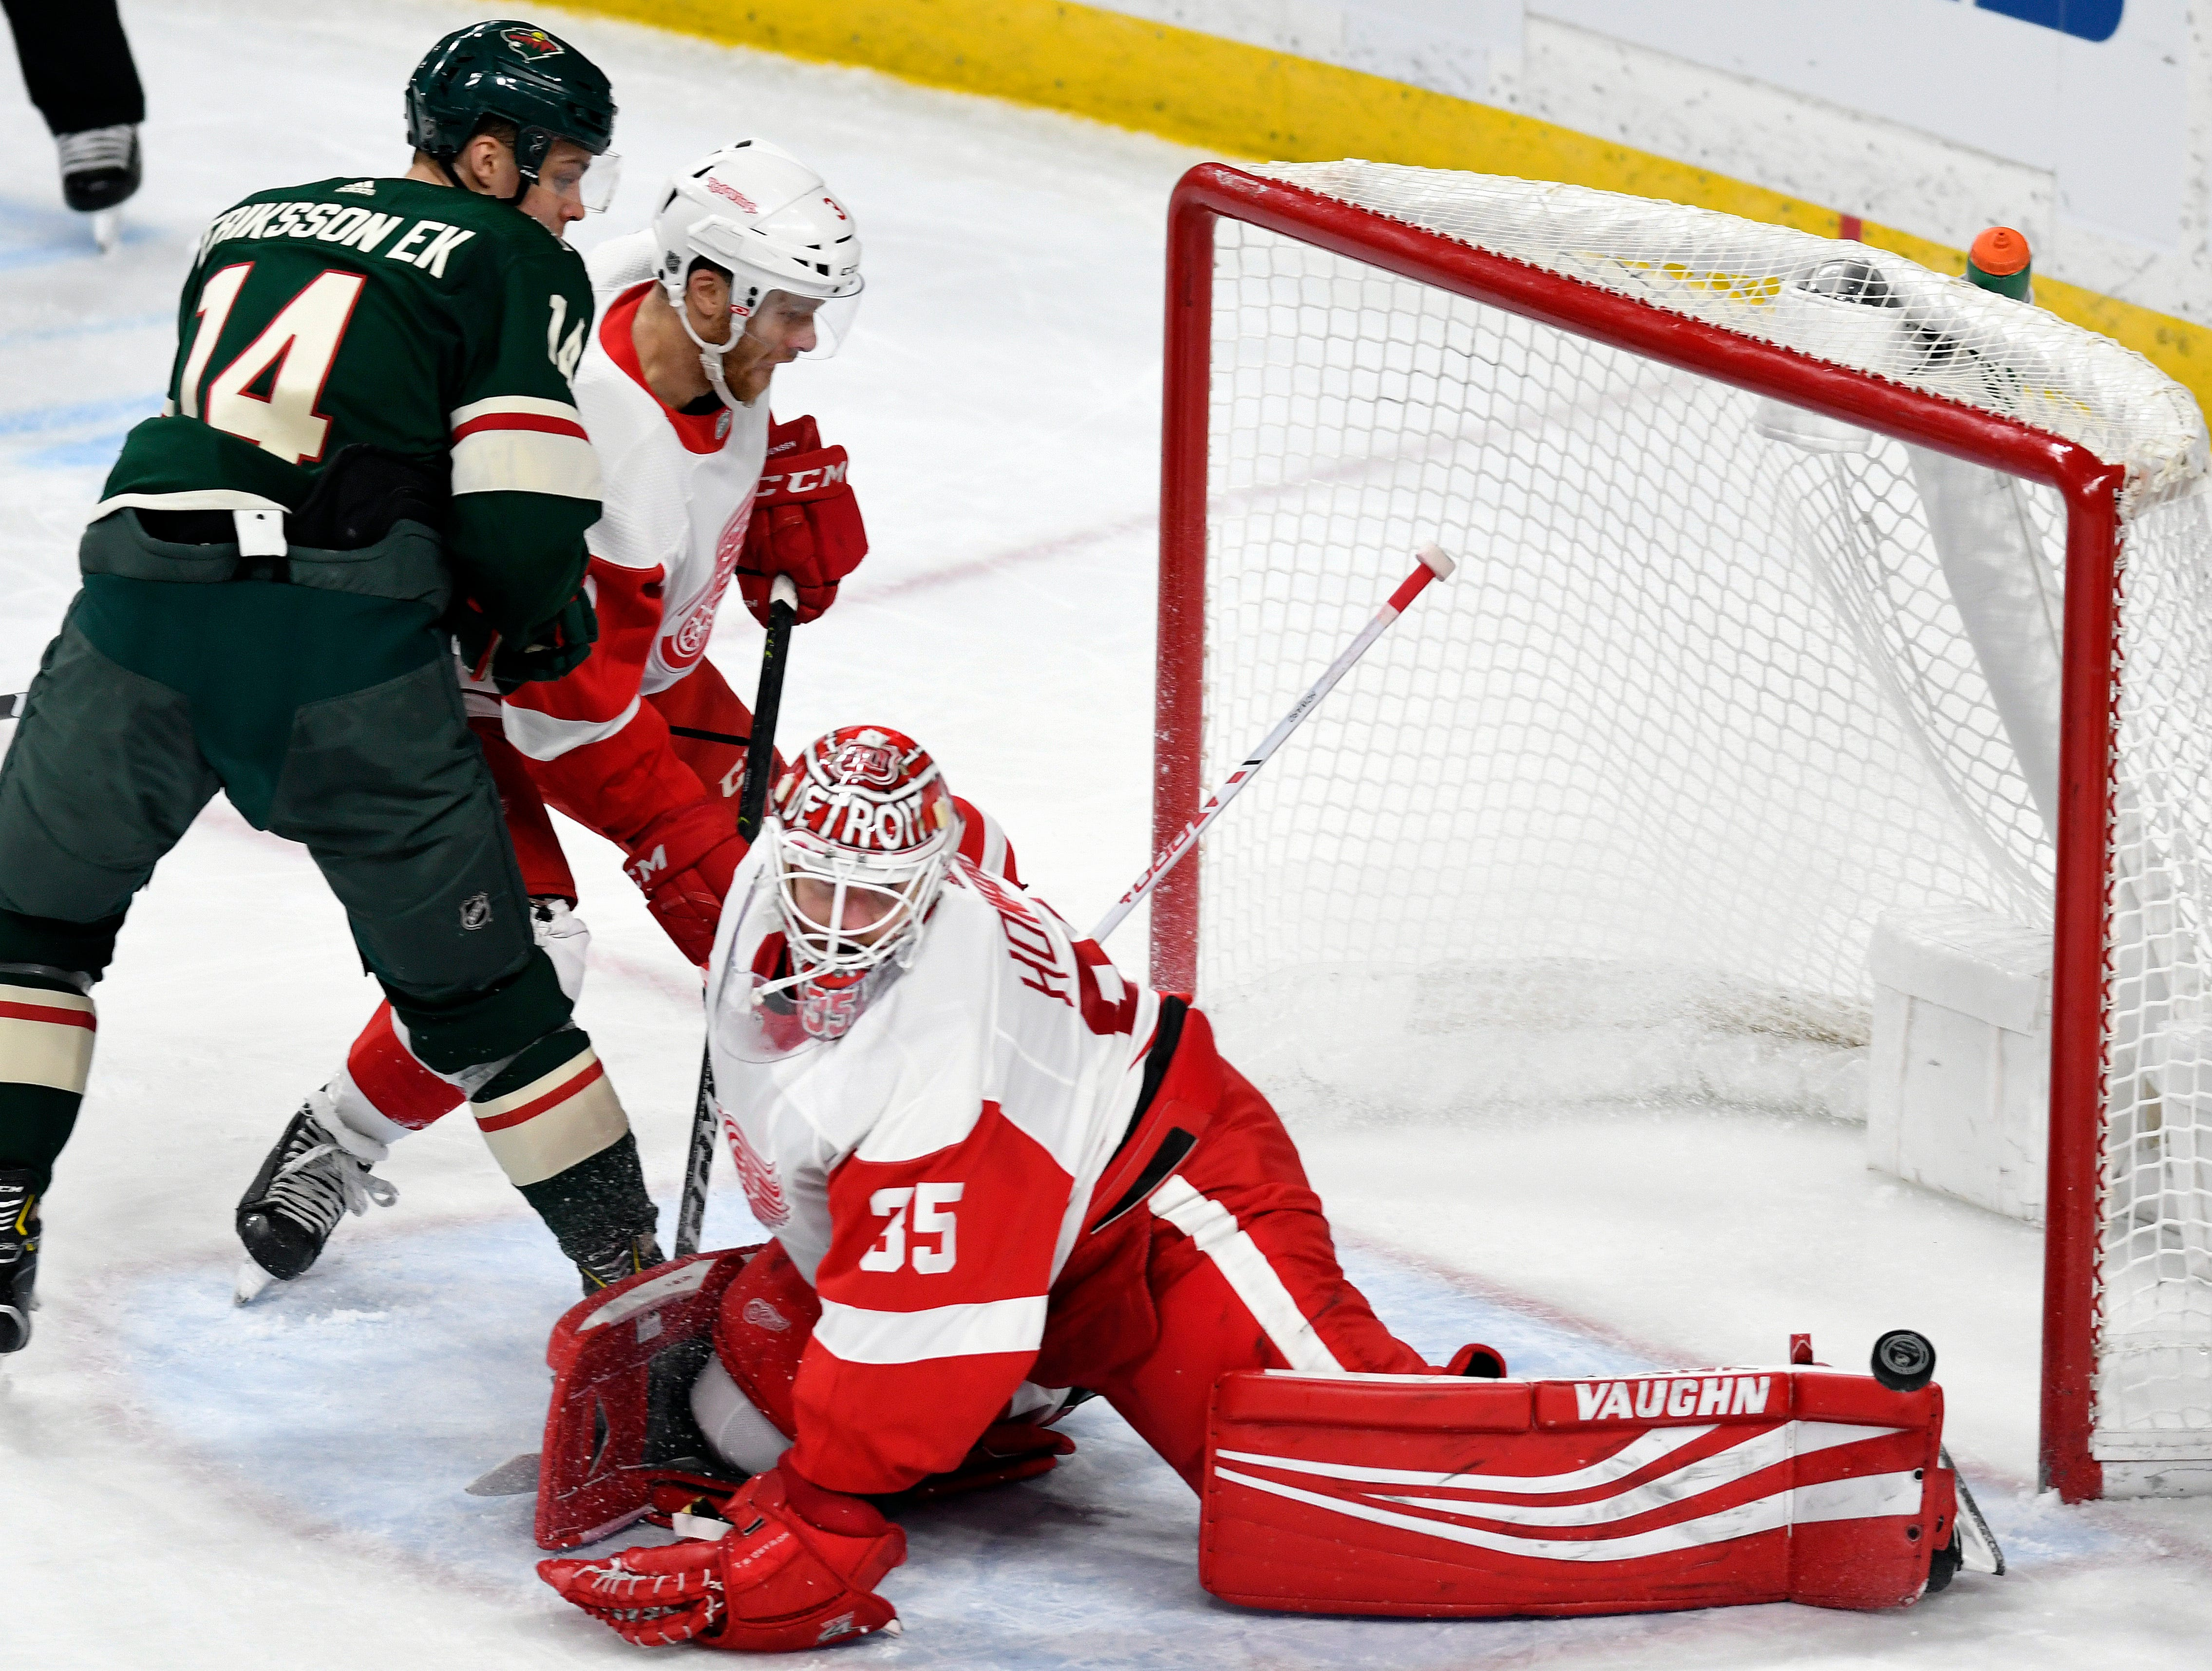 Detroit Red Wings goalie Jimmy Howard (35) has the puck roll off the end of his pad as the Red Wings' Nik Jensen, center, holds Minnesota Wild's Joel Eriksson Ek (14), of Sweden, away from the goal during the second period of an NHL hockey game Saturday, Jan. 12, 2019, in St. Paul, Minn. (AP Photo/Tom Olmscheid)